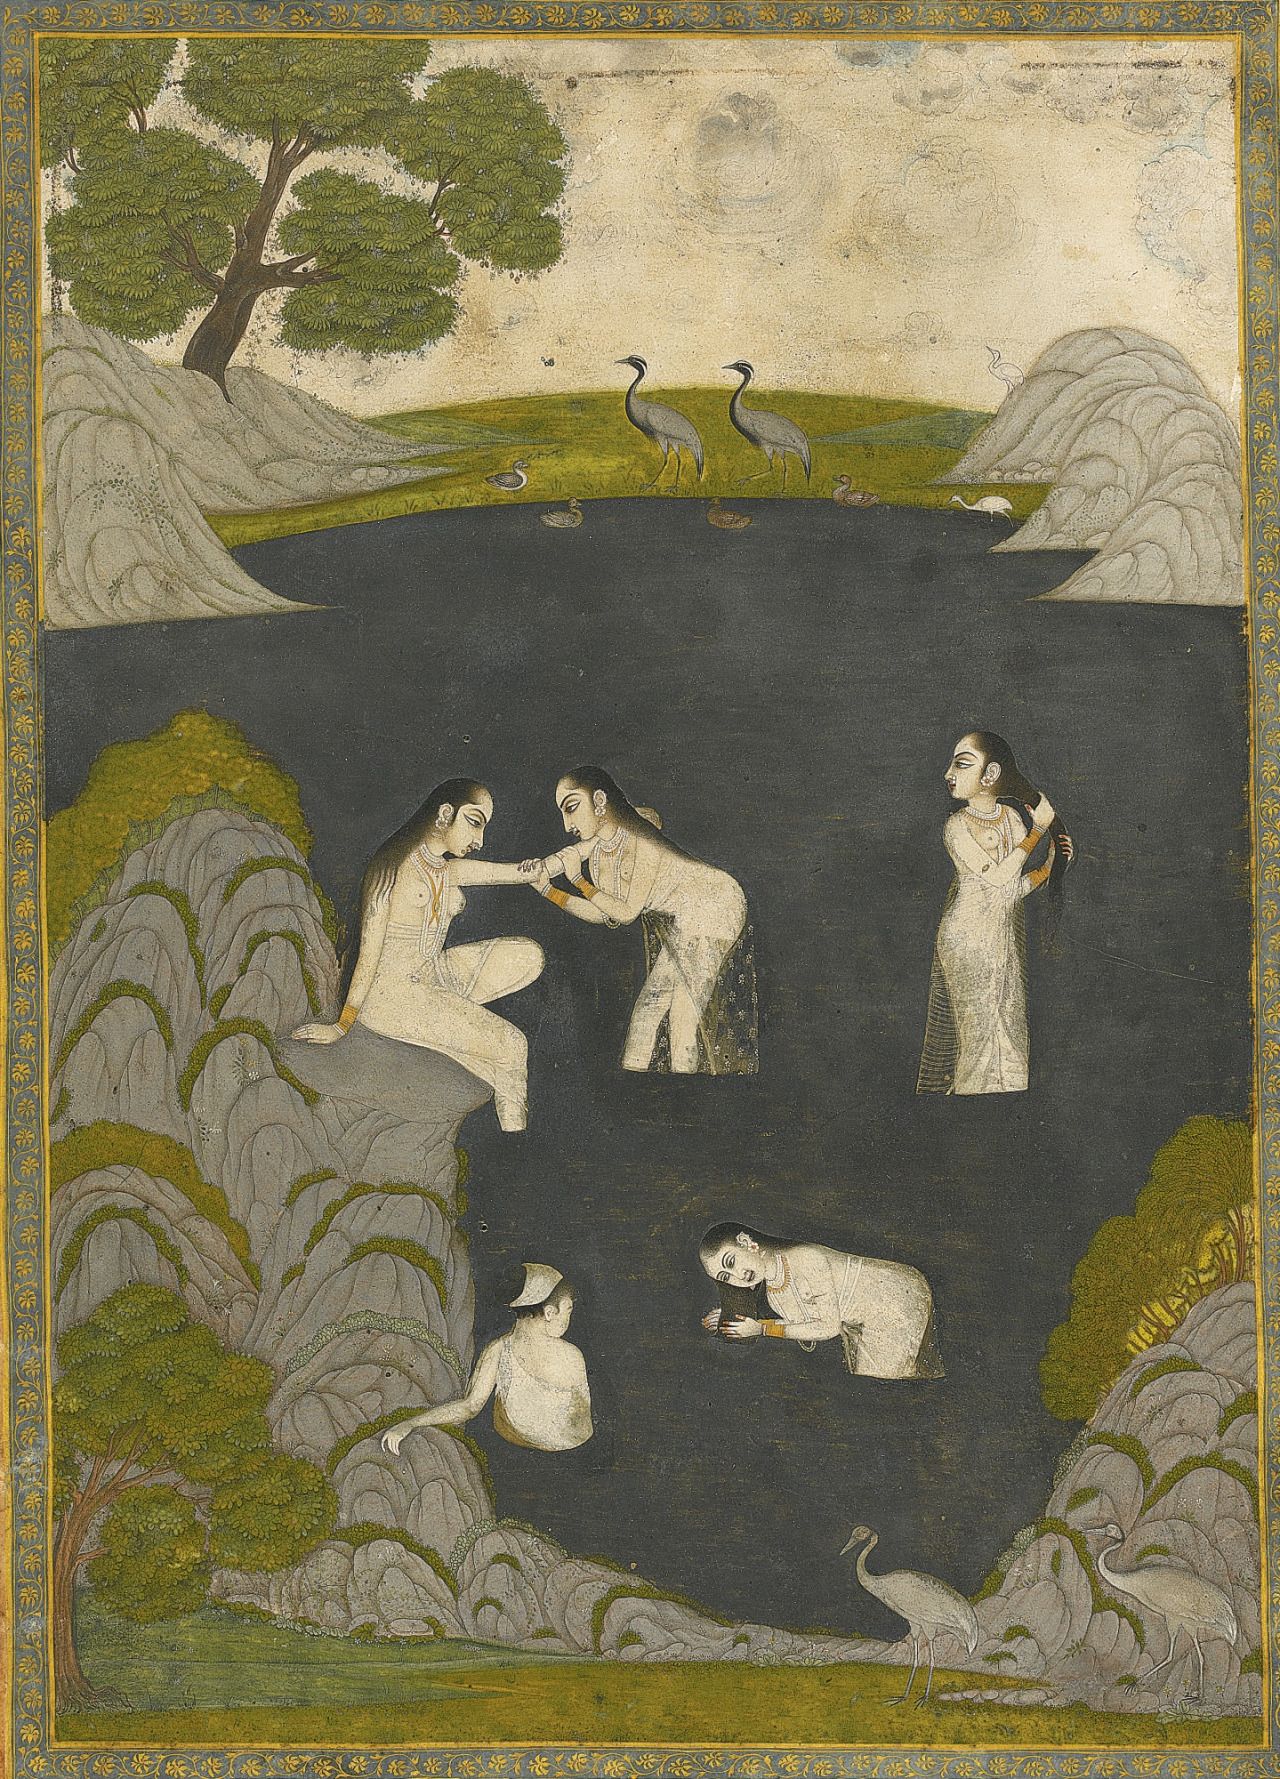 Ladies Bathing in a Rocky Pool - India, Awadh, Late 18th century